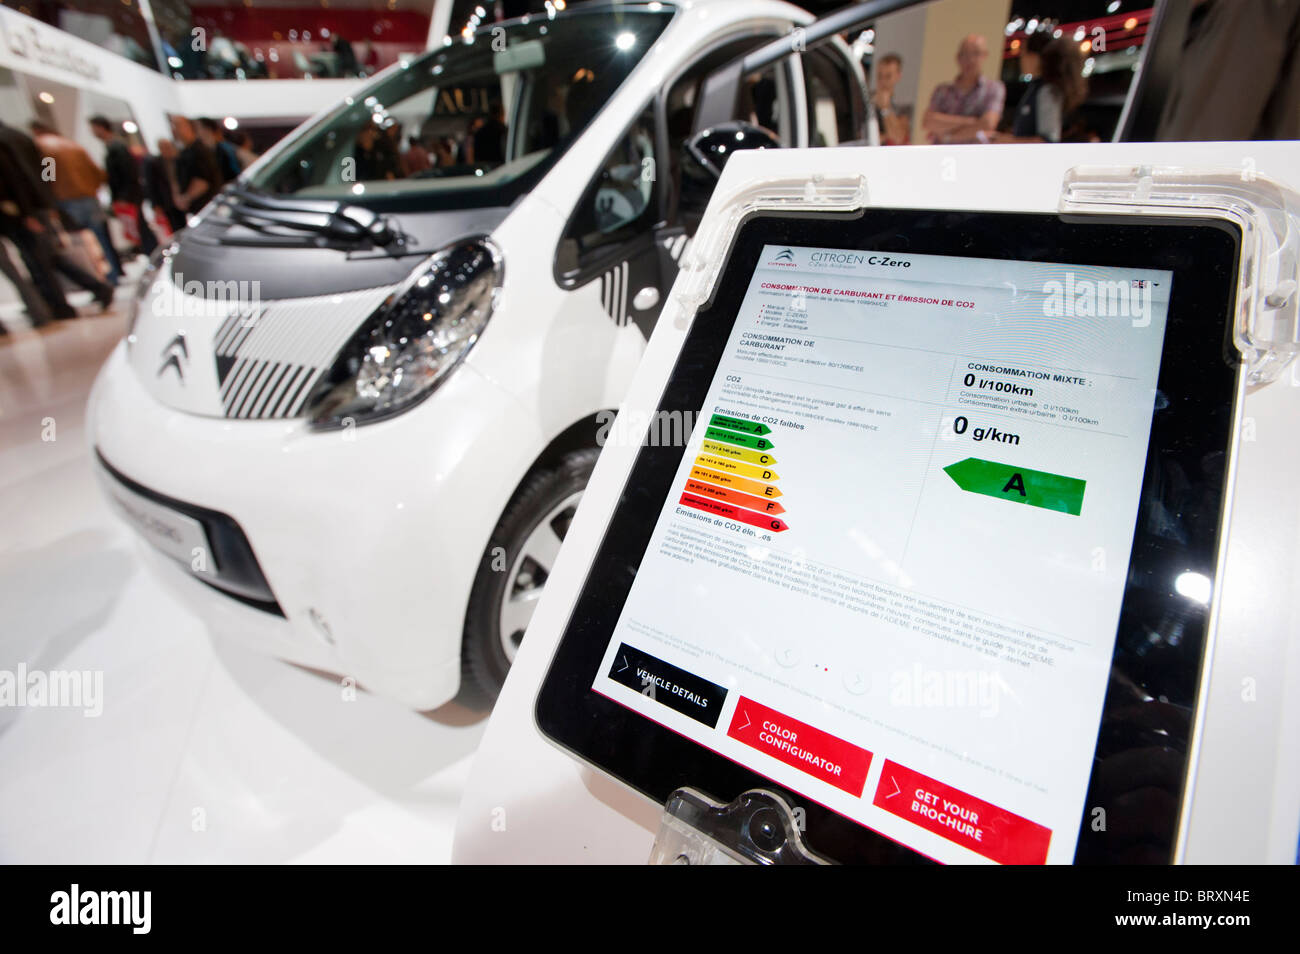 Technical Information Display Showing Zero C02 Emissions From